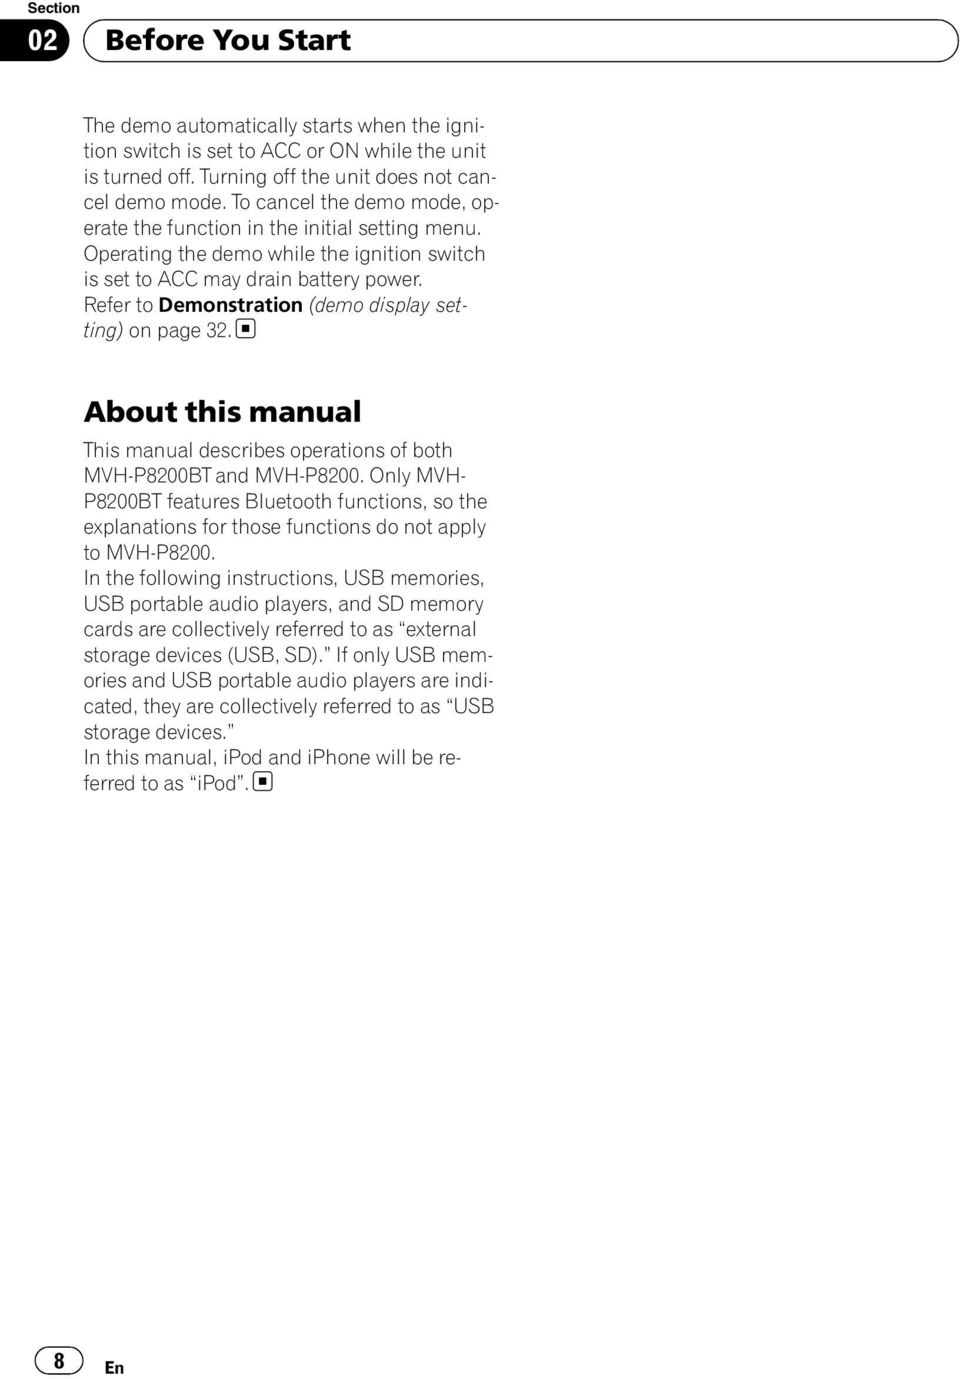 hight resolution of refer to demonstration demo display setting on page 32 about this manual this